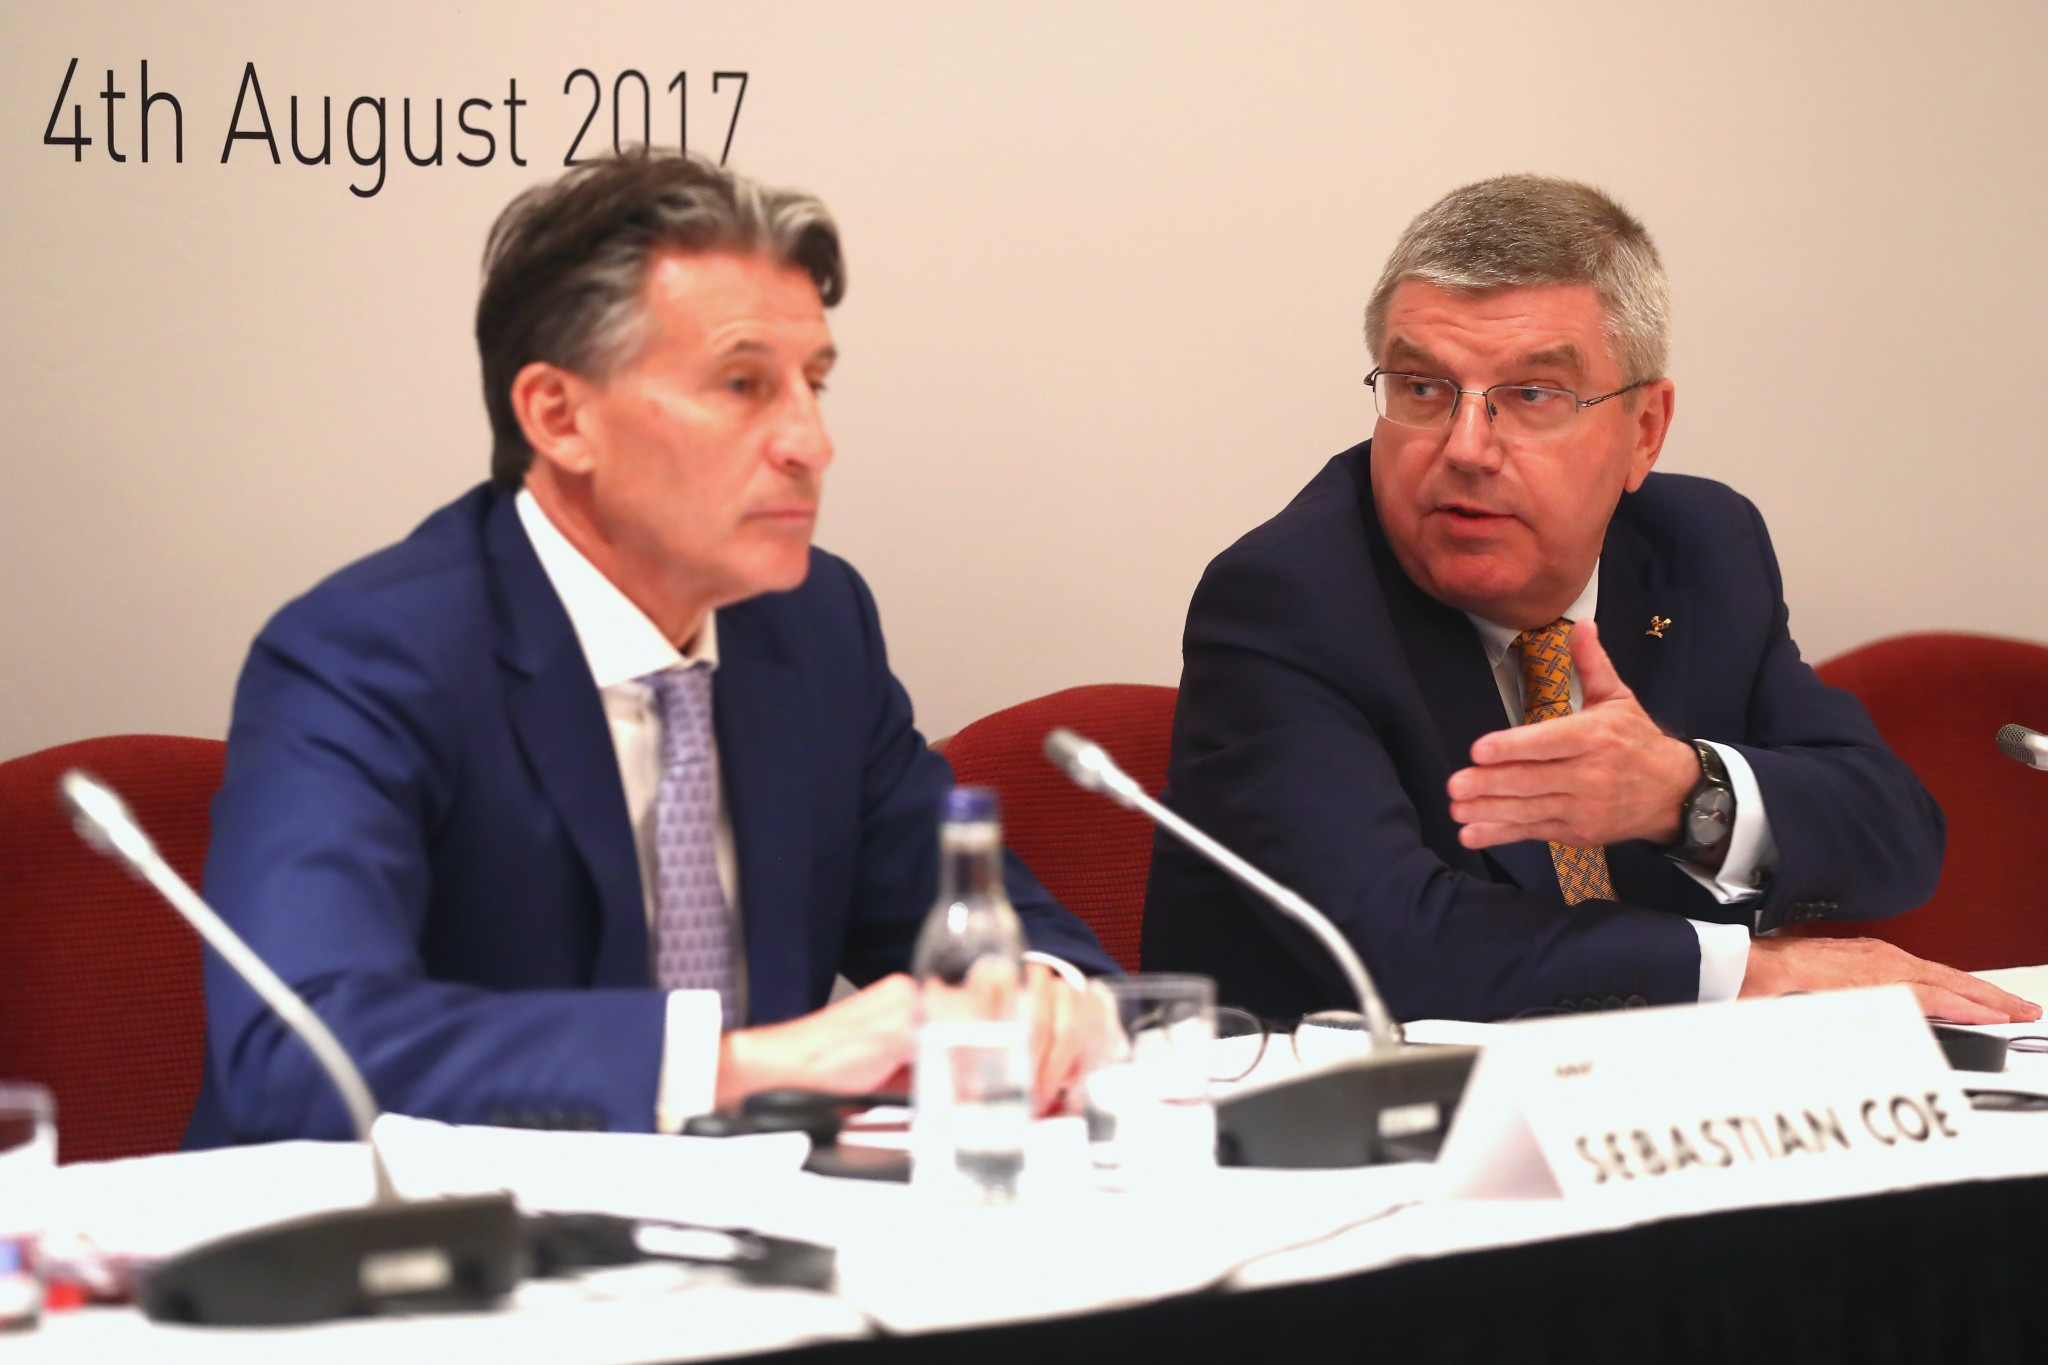 Coe claims to have agreed with Bach to delay IOC membership to prioritise IAAF reforms